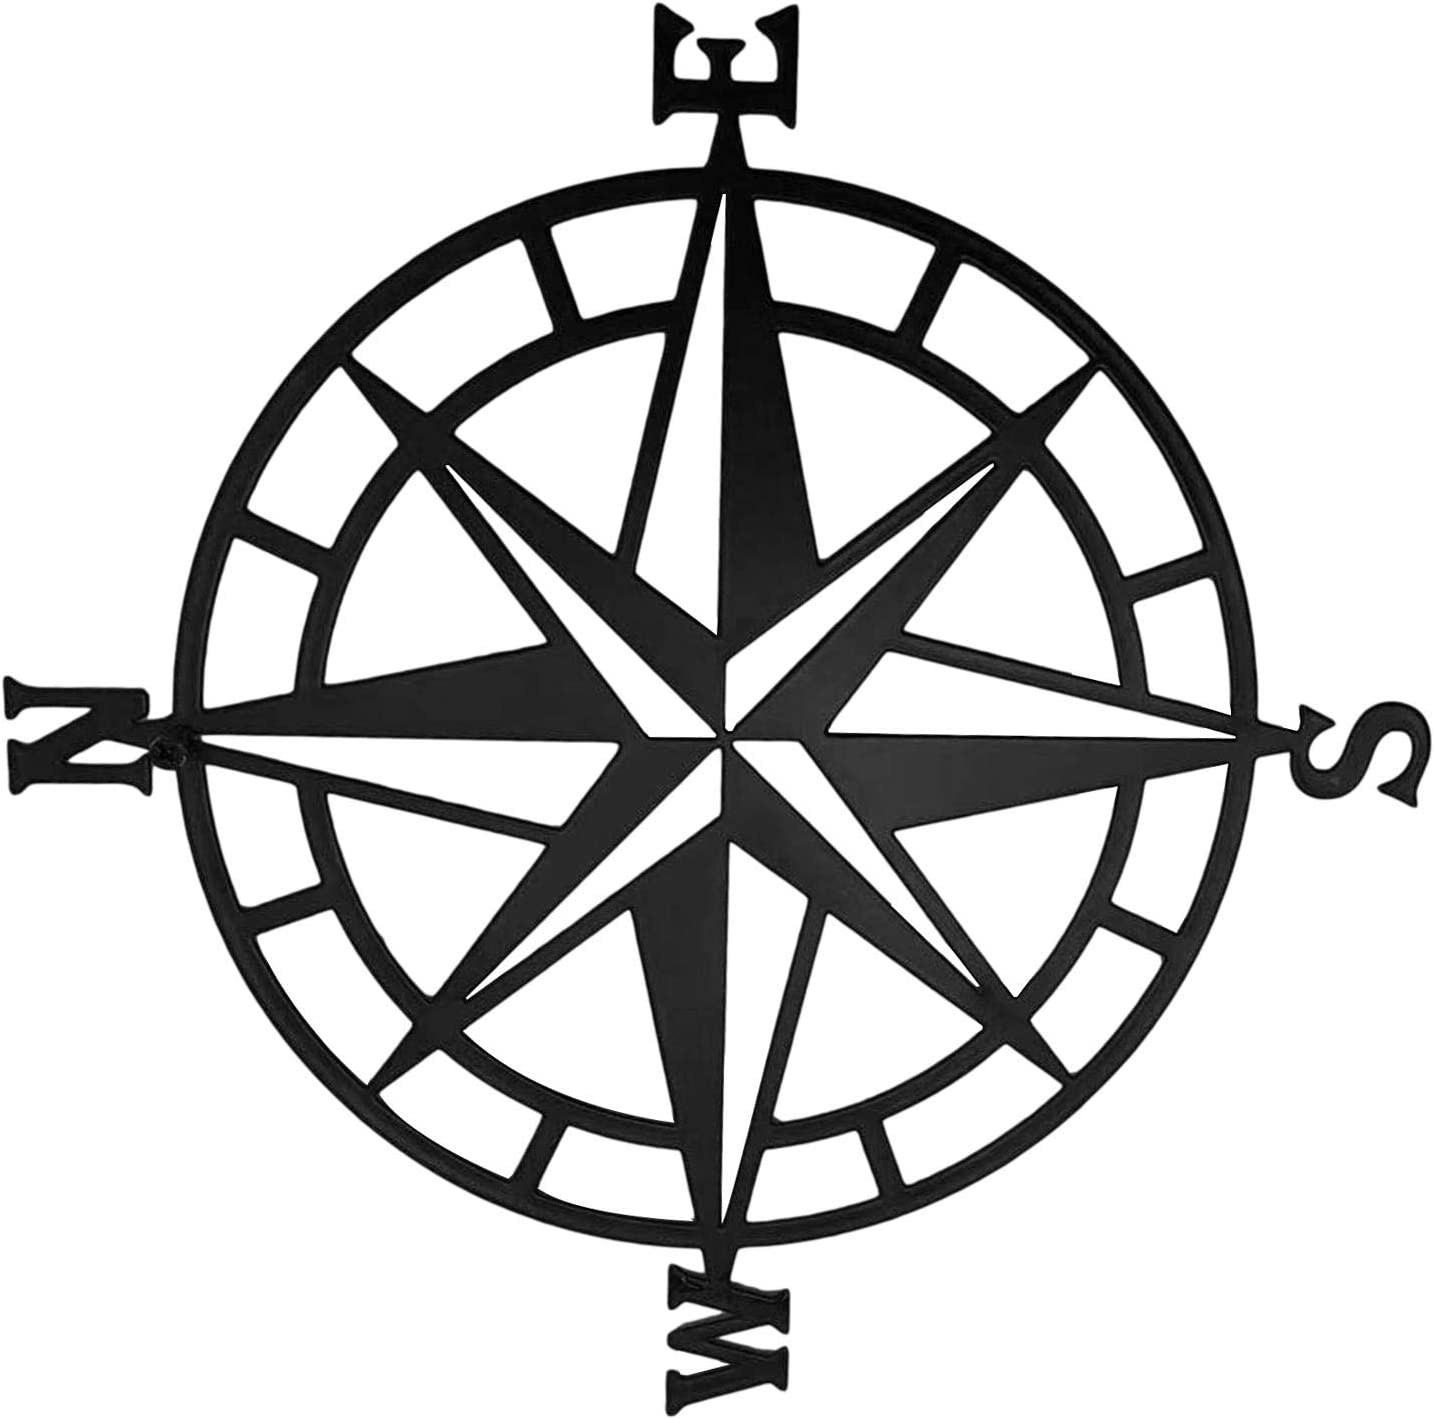 Doefo 11.8 Inch Metal Compass Mural Decoration Nautical Decoration Bedroom Living Room Garden Office Wall Hanging Home Decoration